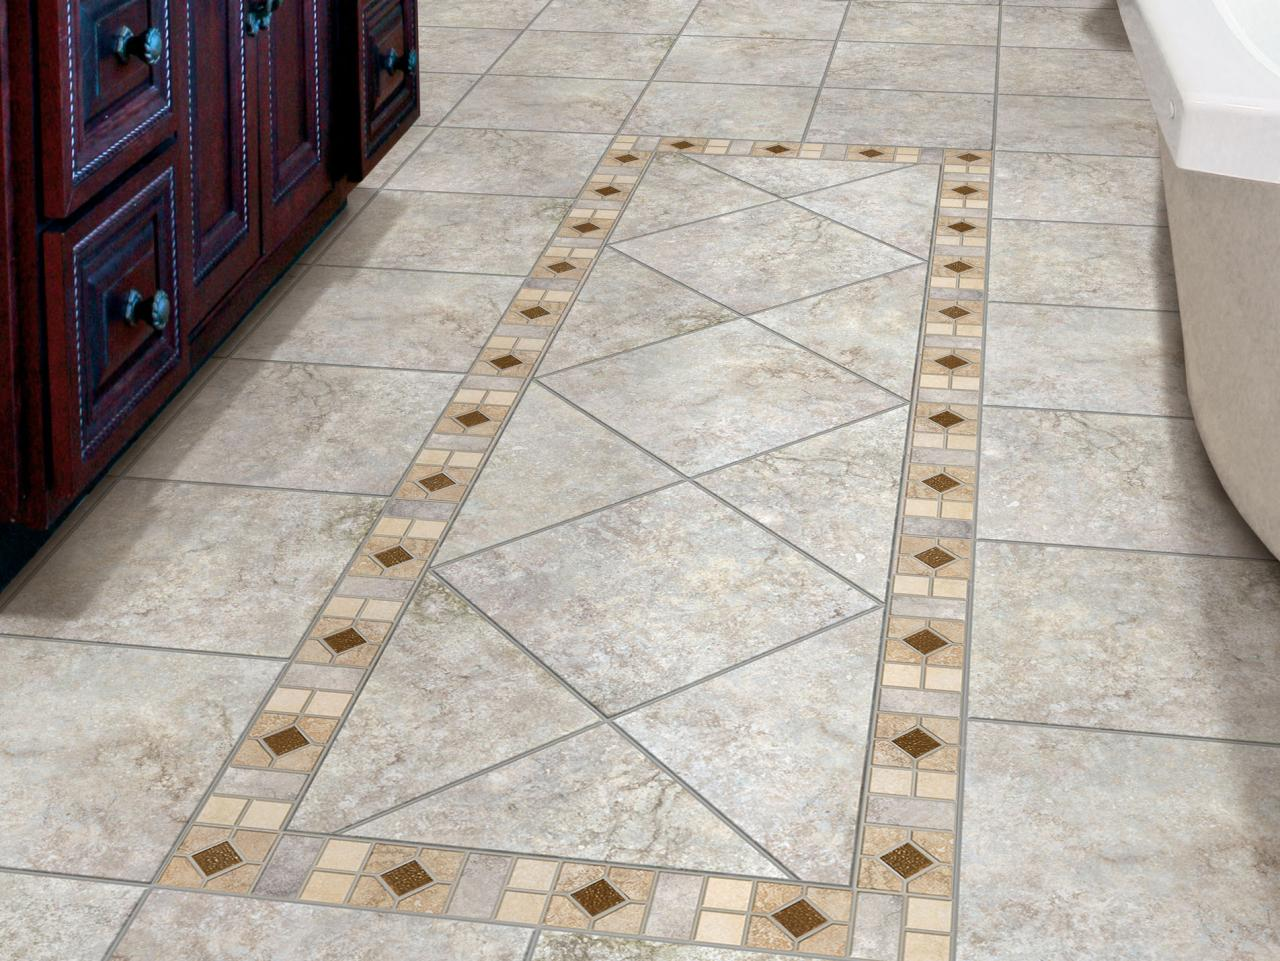 Reasons to choose porcelain tile hgtv reasons to choose porcelain tile dailygadgetfo Choice Image